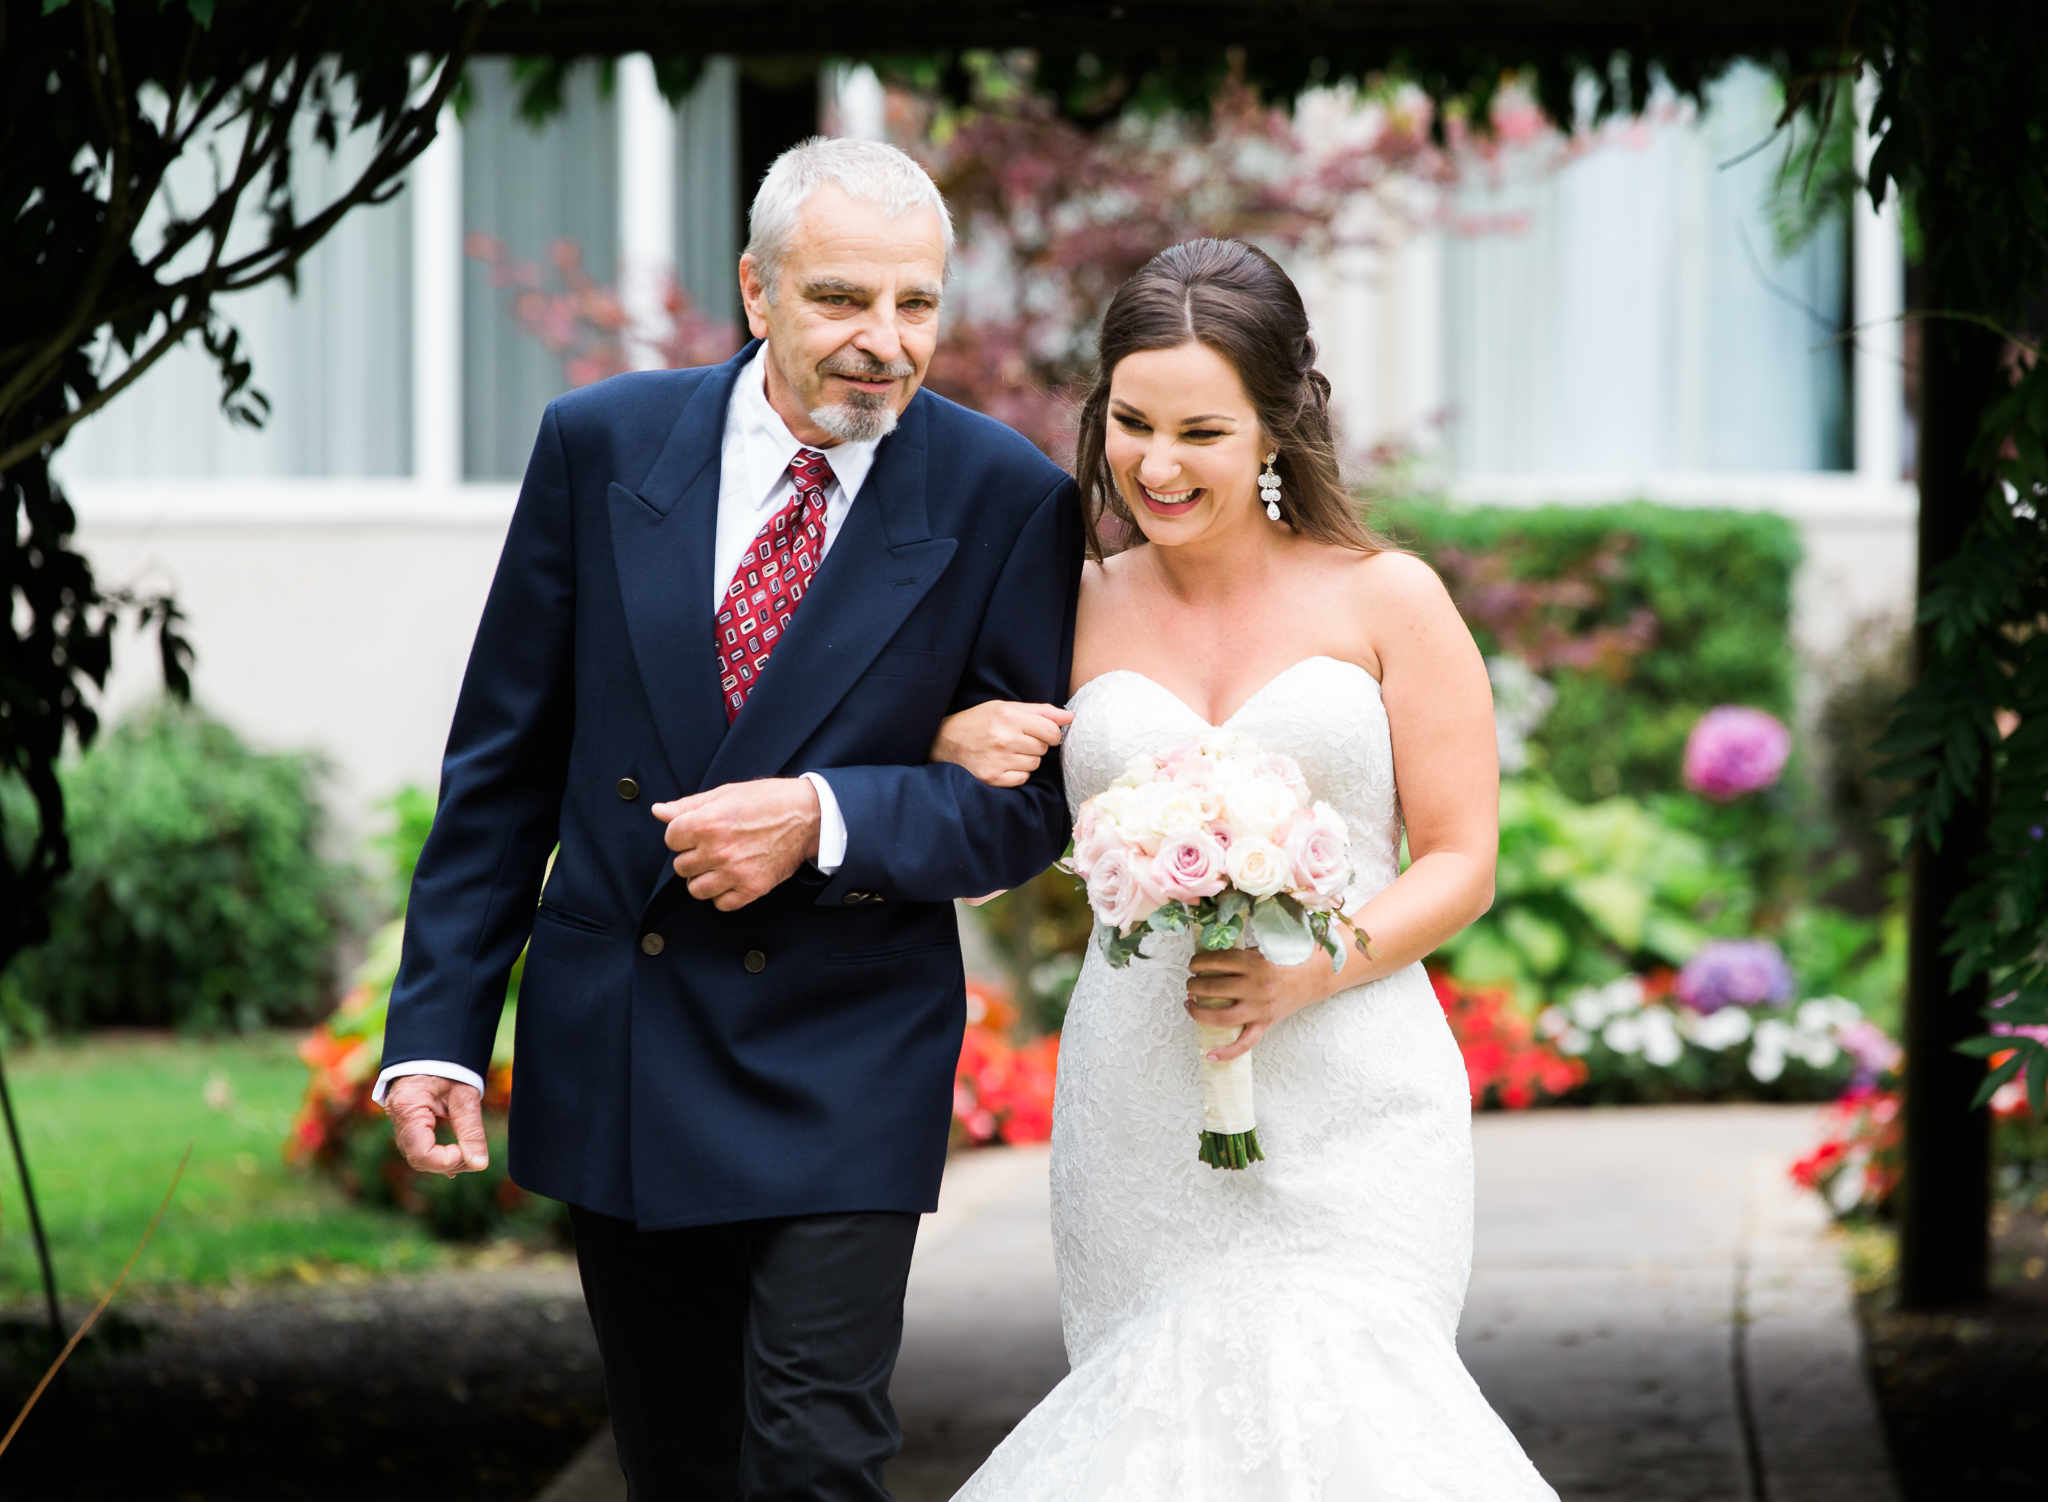 Chilliwack Chilliwack Abbotsford Langley  Vancouver Lower Mainland Documentary Wedding and Family Photographer